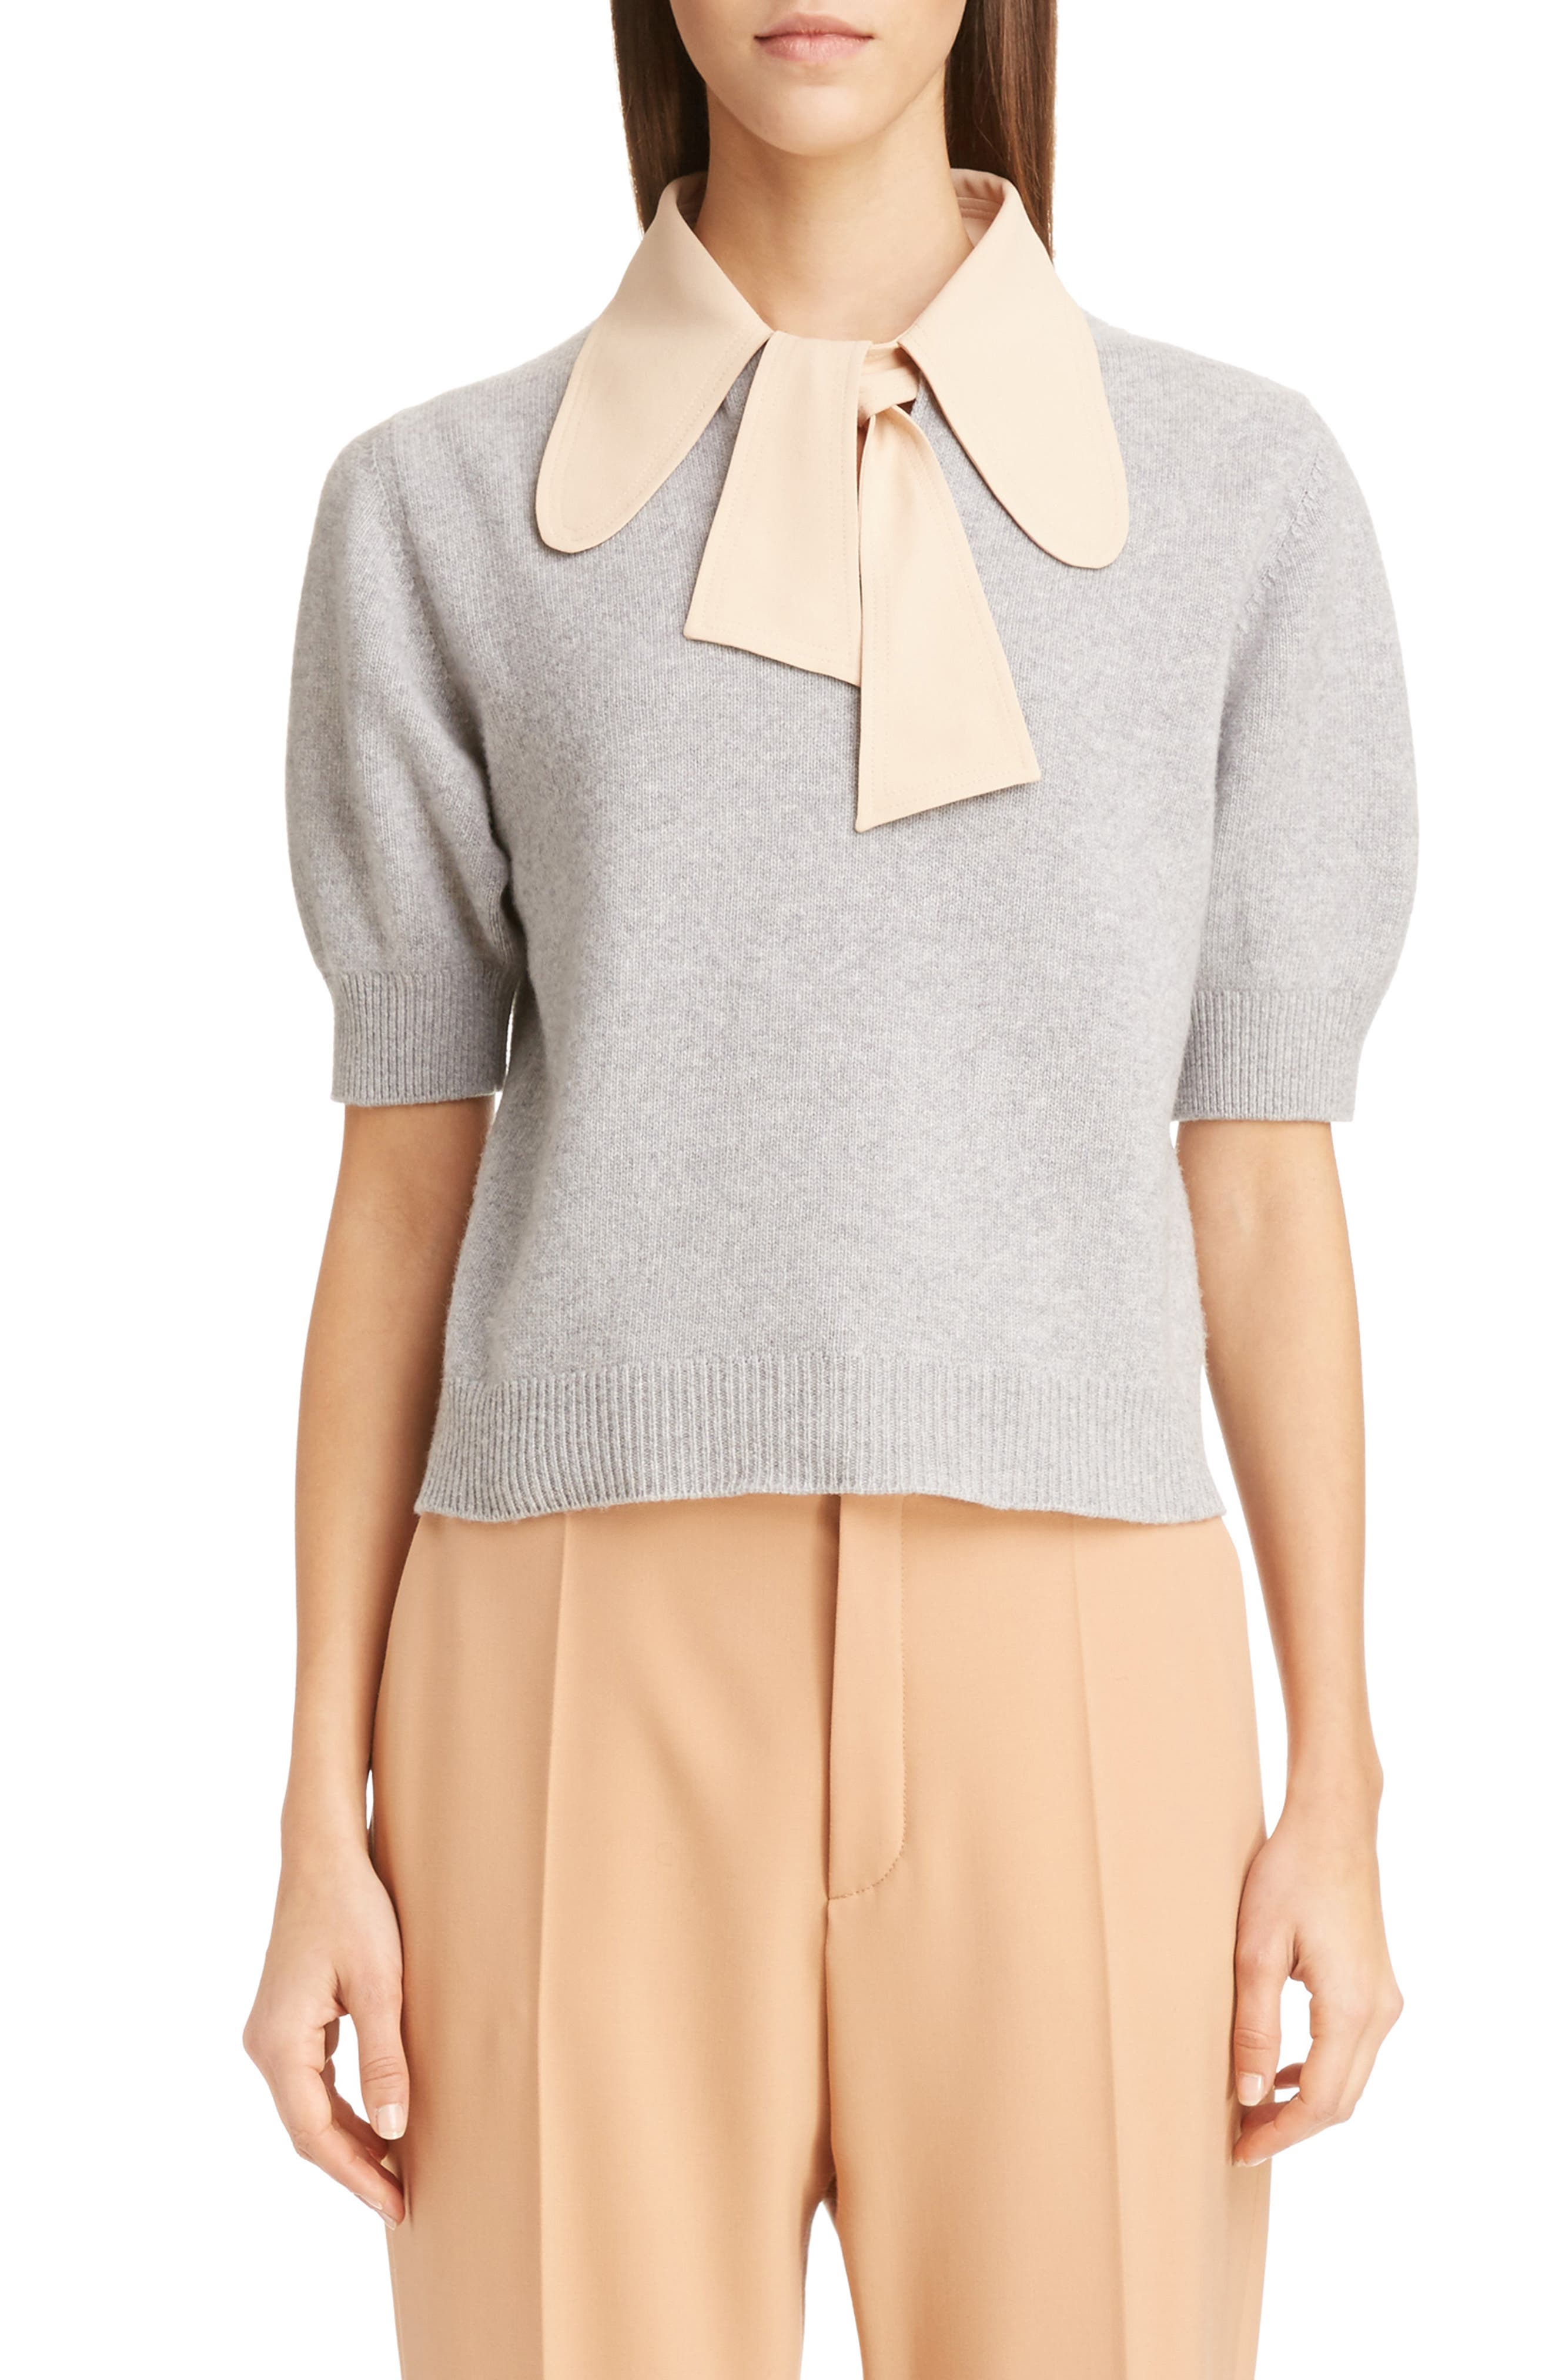 Chloé Wool & Cashmere Sweater with Removable Crepe Tie Collar